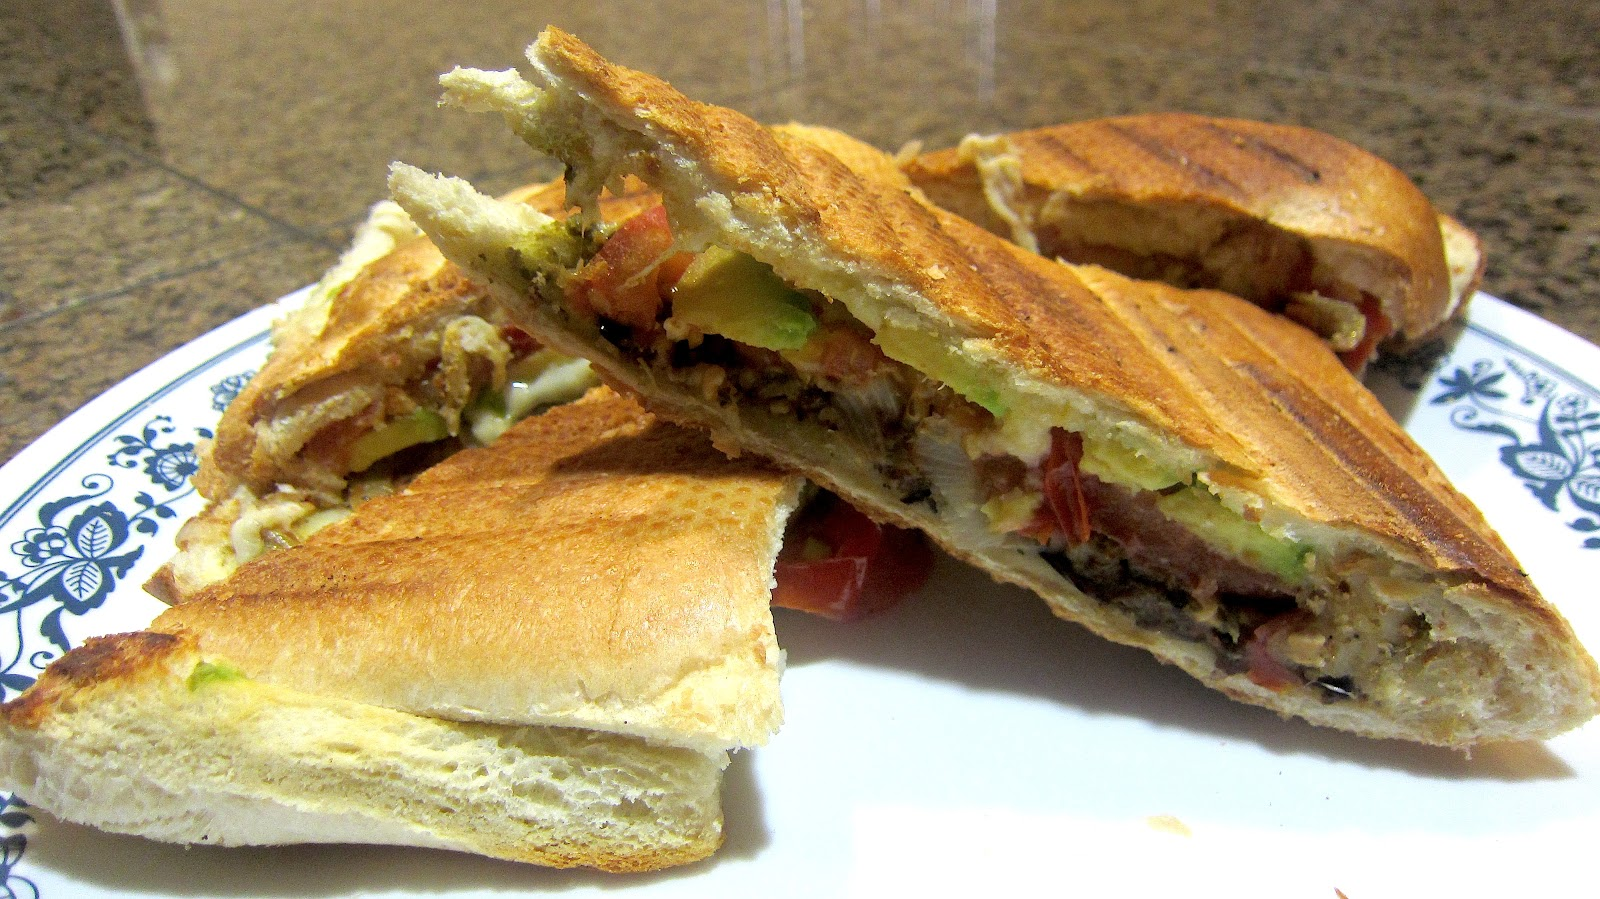 ... pesto tomato and roasted eggplant spread fried eggplant sandwich